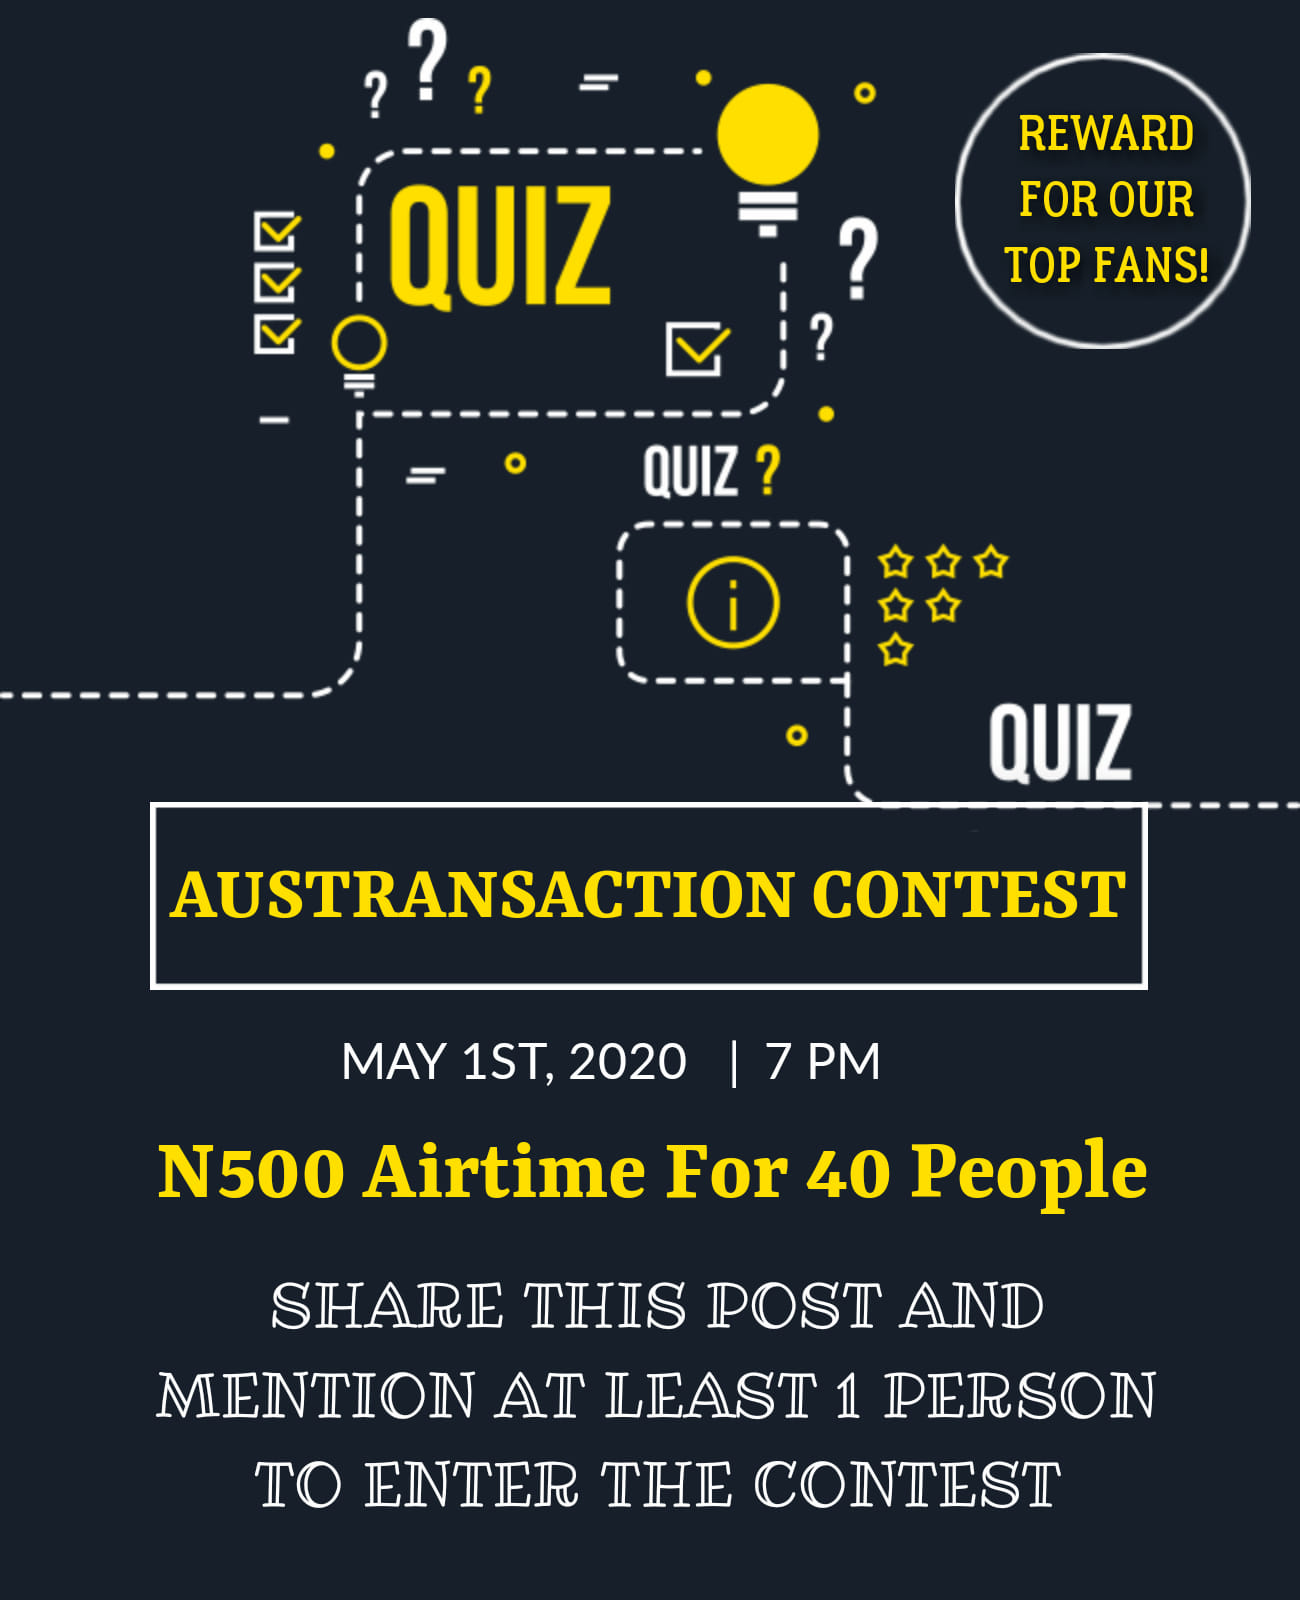 40 People to receive 500 Airtime in Austransaction Contest